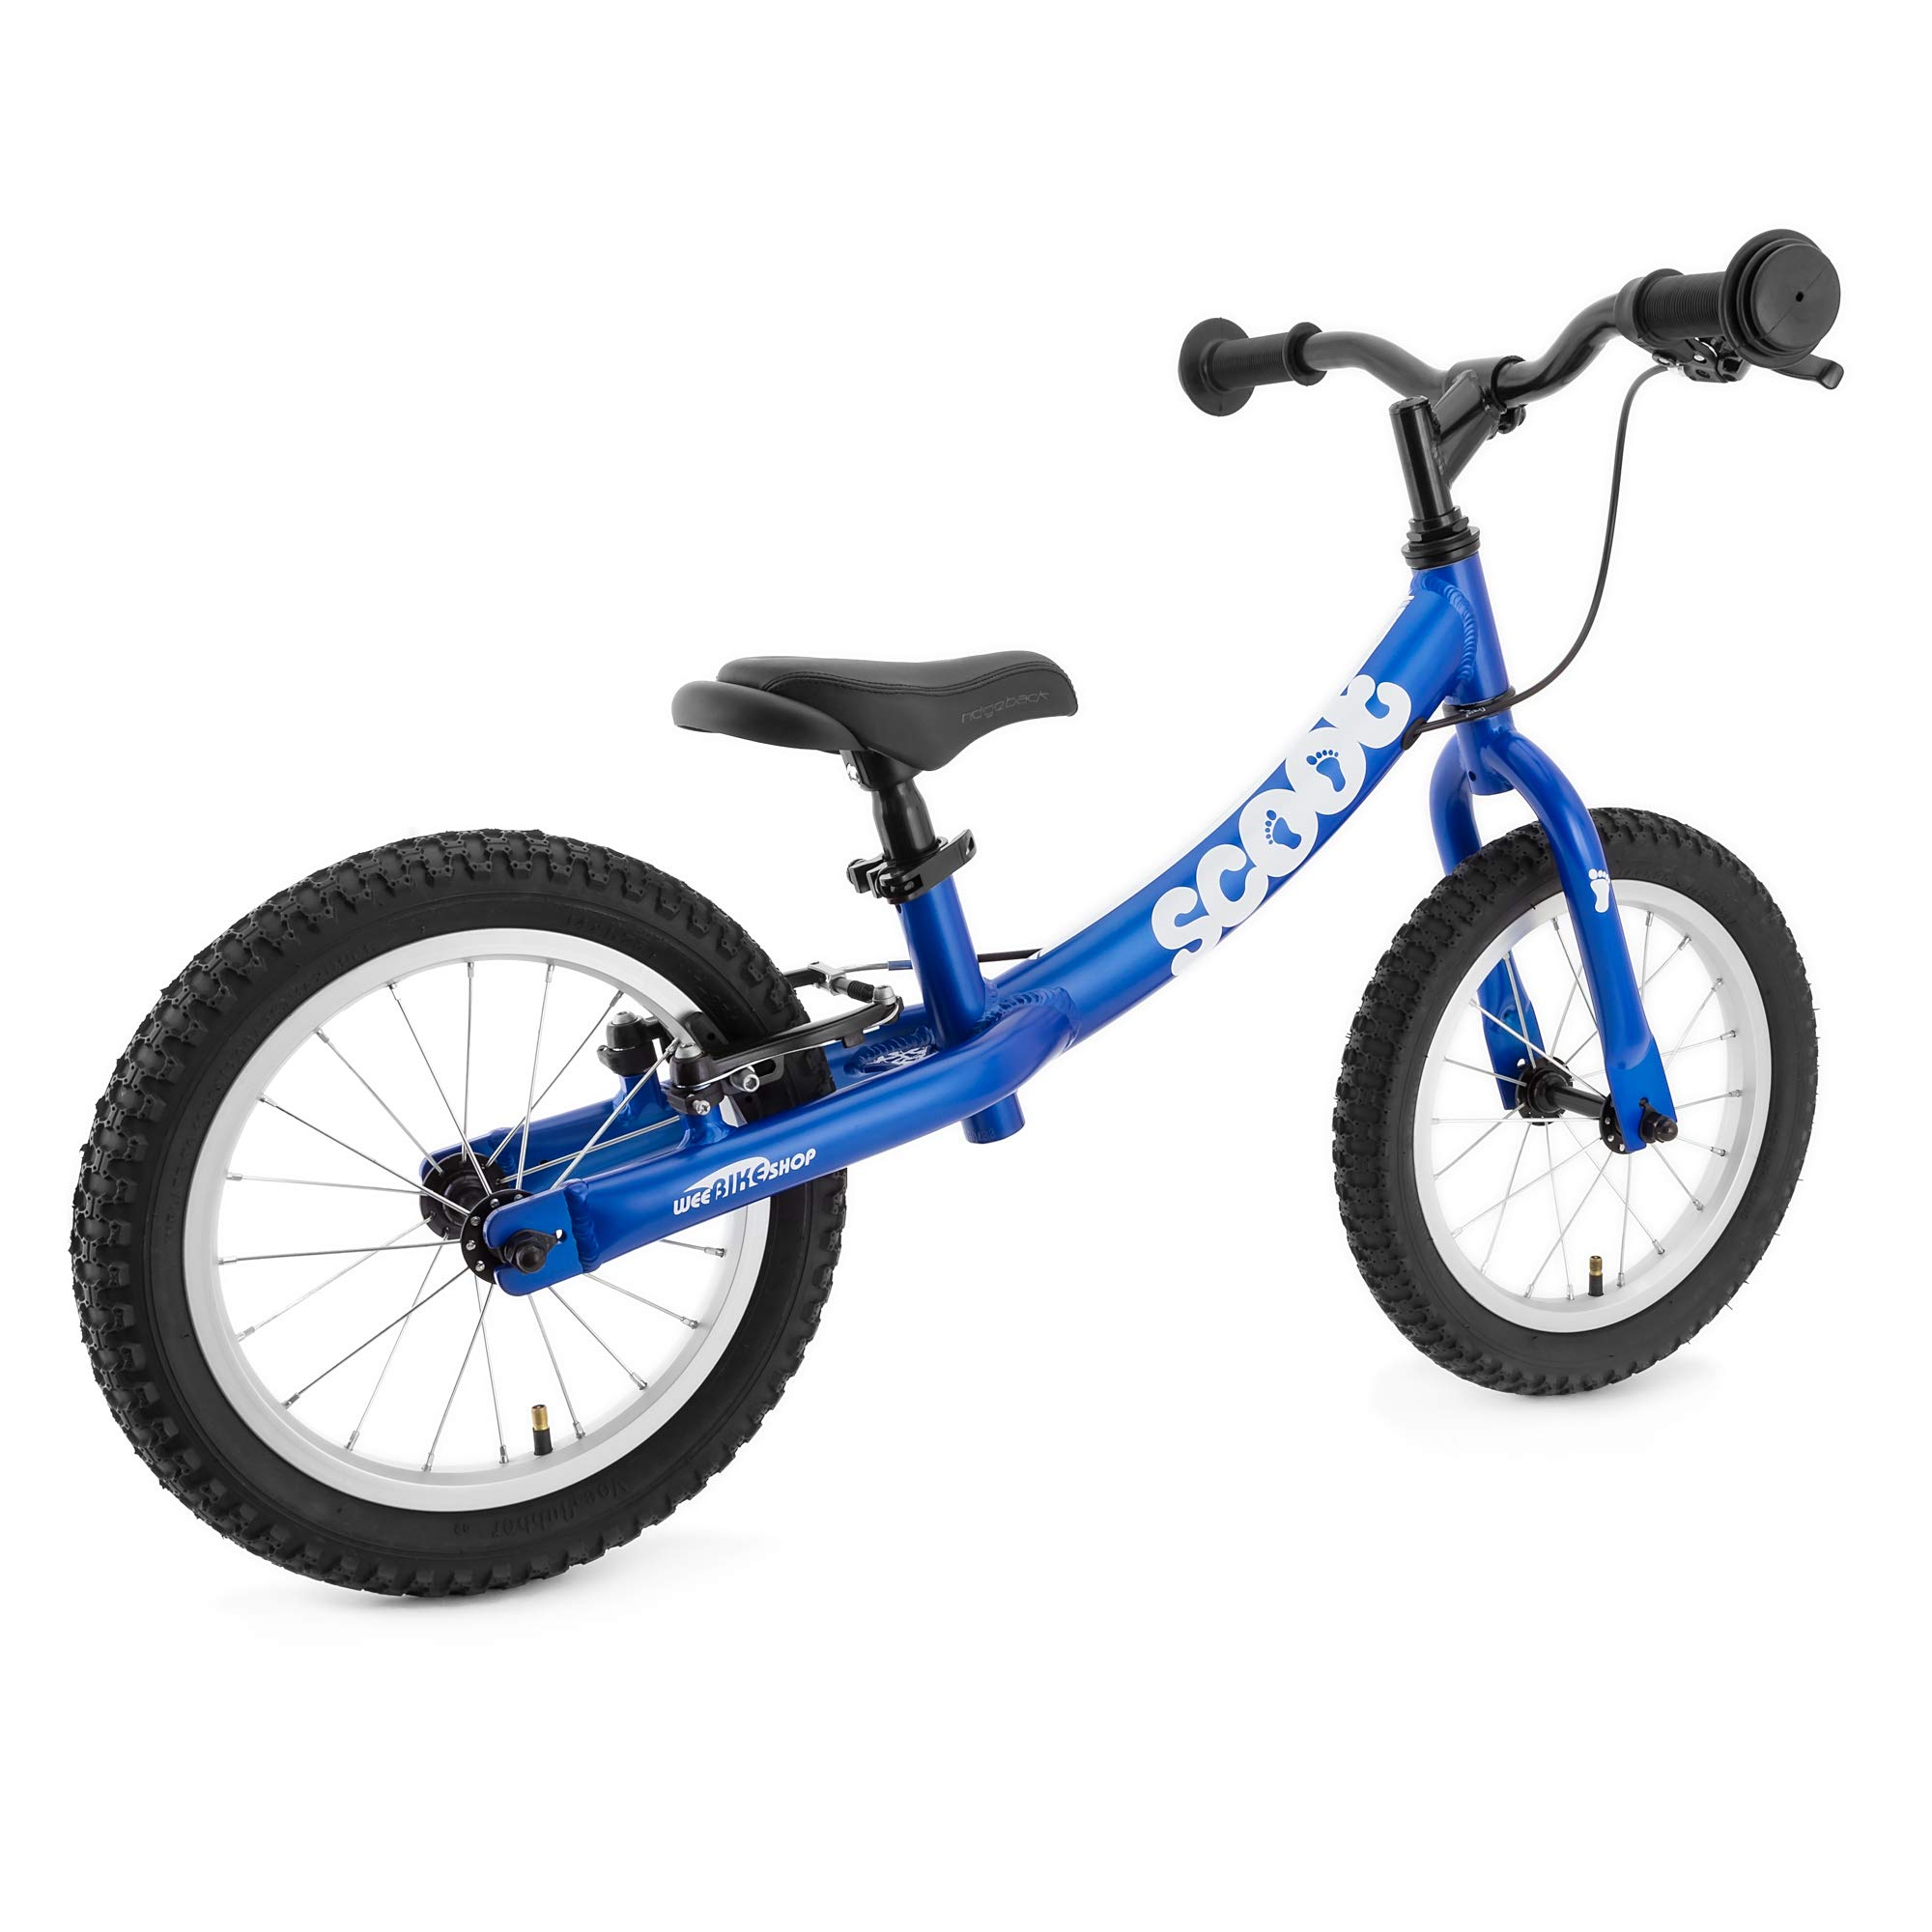 Ridgeback UK 2018 US Edition Scoot XL 14'' Balance Bike in Blue (Age 4-7)